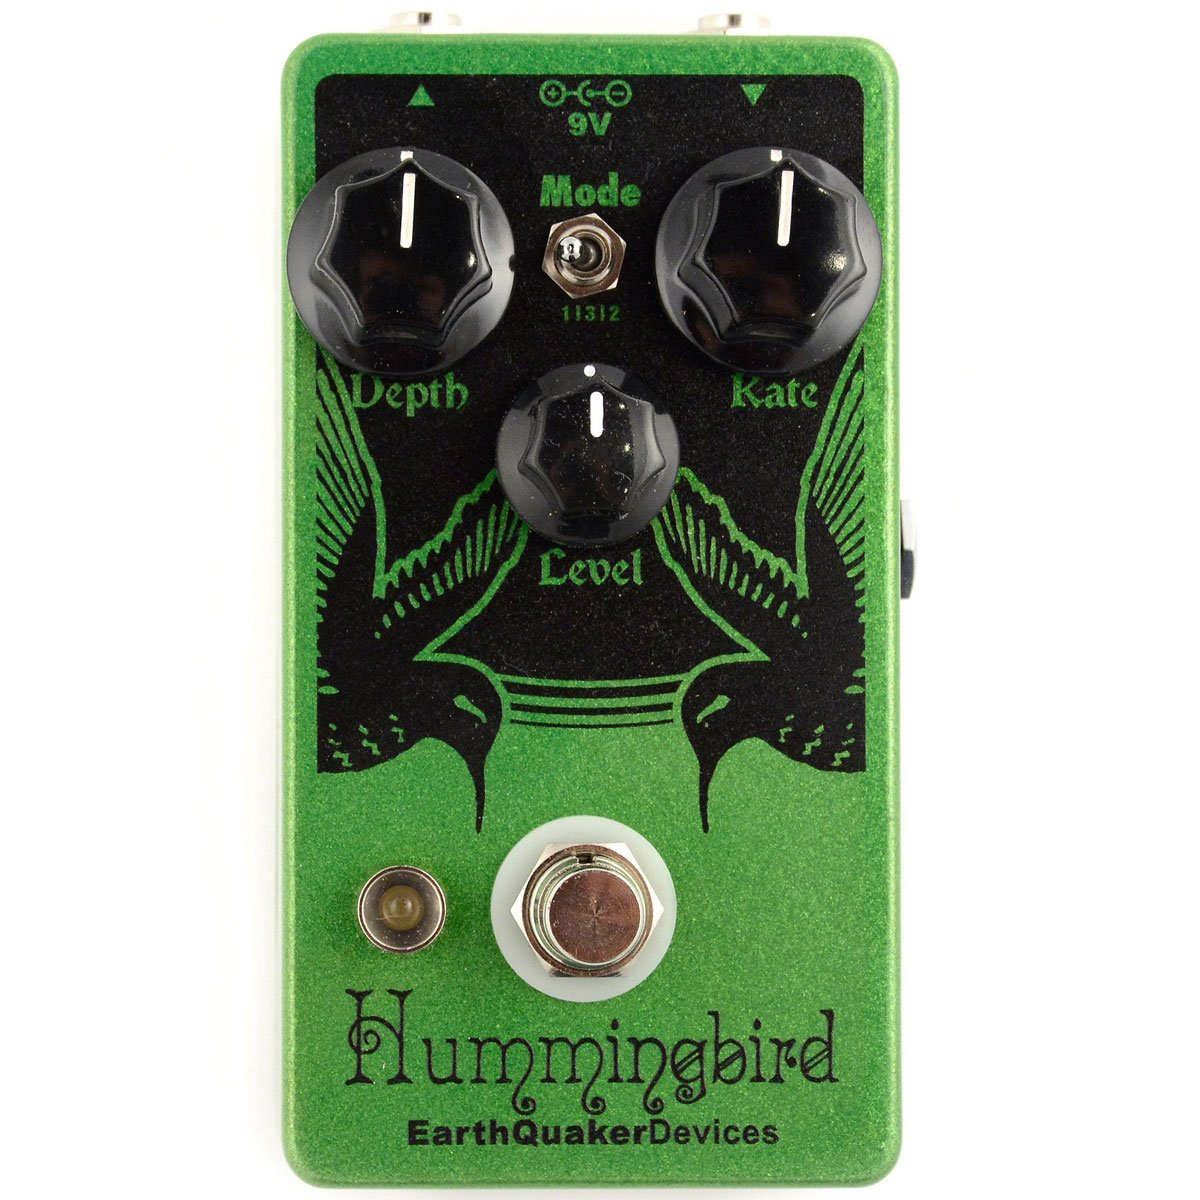 Earthquaker Devices Hummingbird V4 Repeat Percussion | Lucky Fret Music Co.